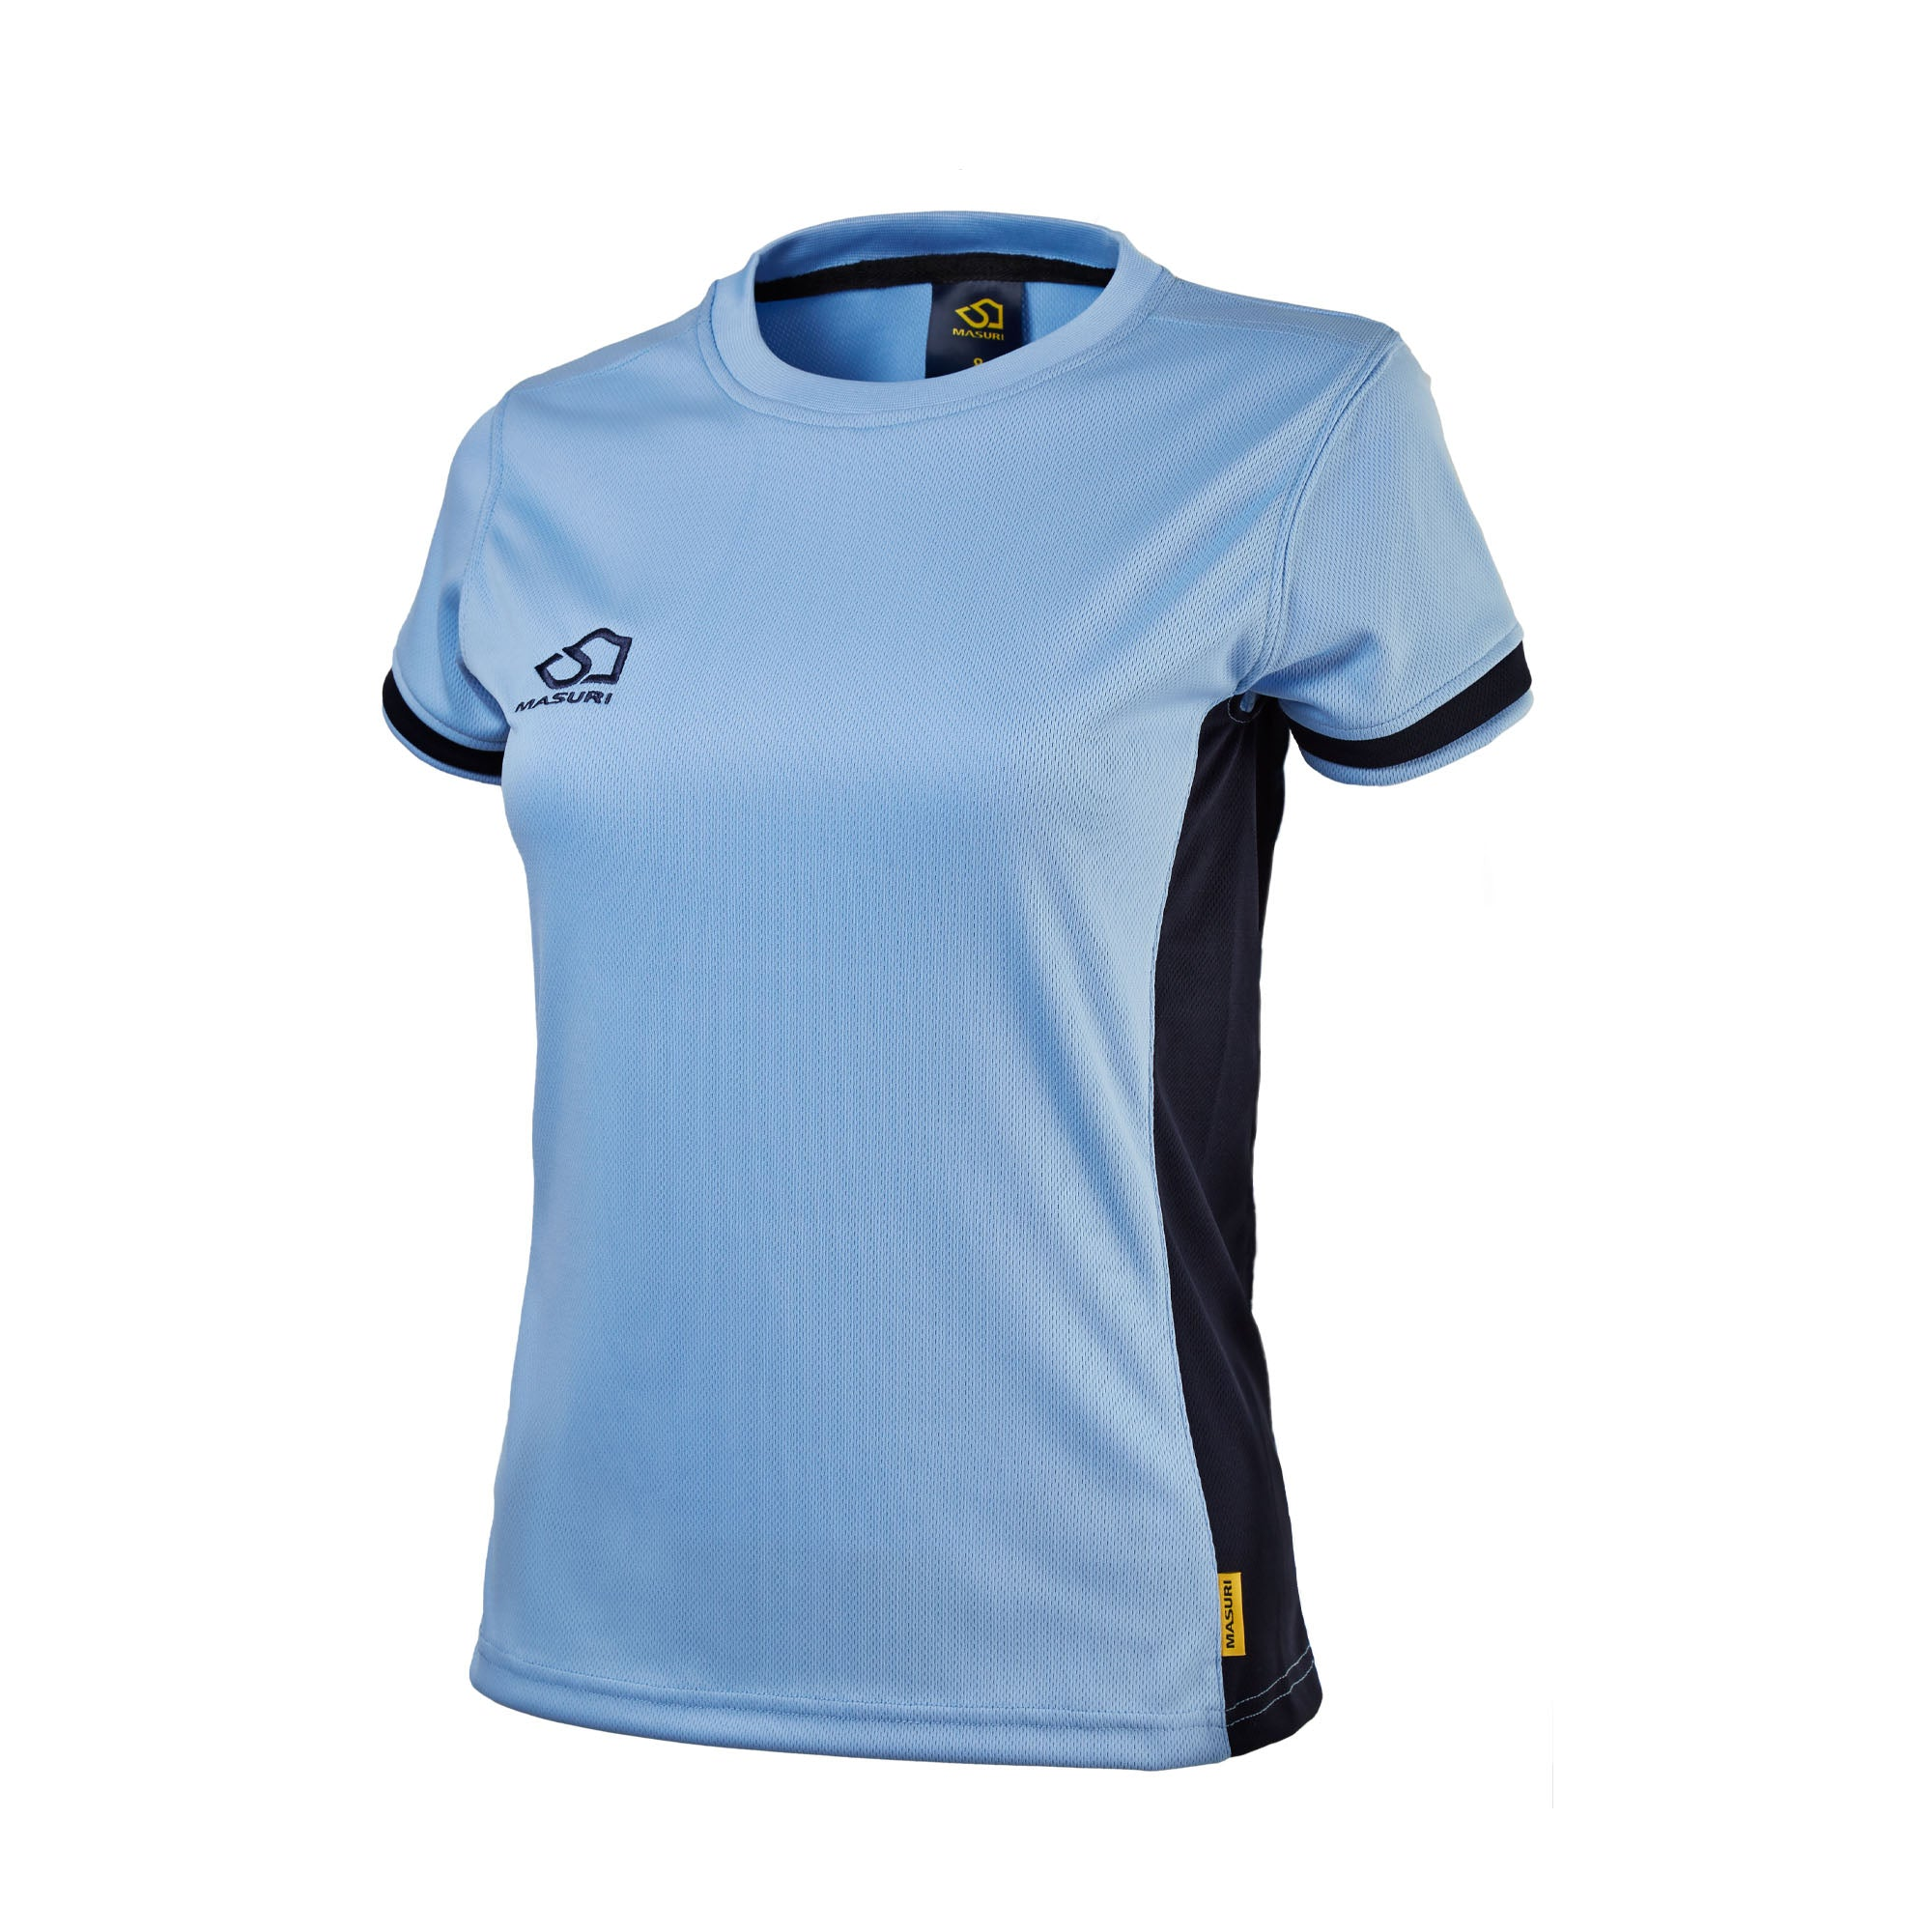 LADIES MASURI TRAINING T-SHIRT - TRADE ACCOUNTS